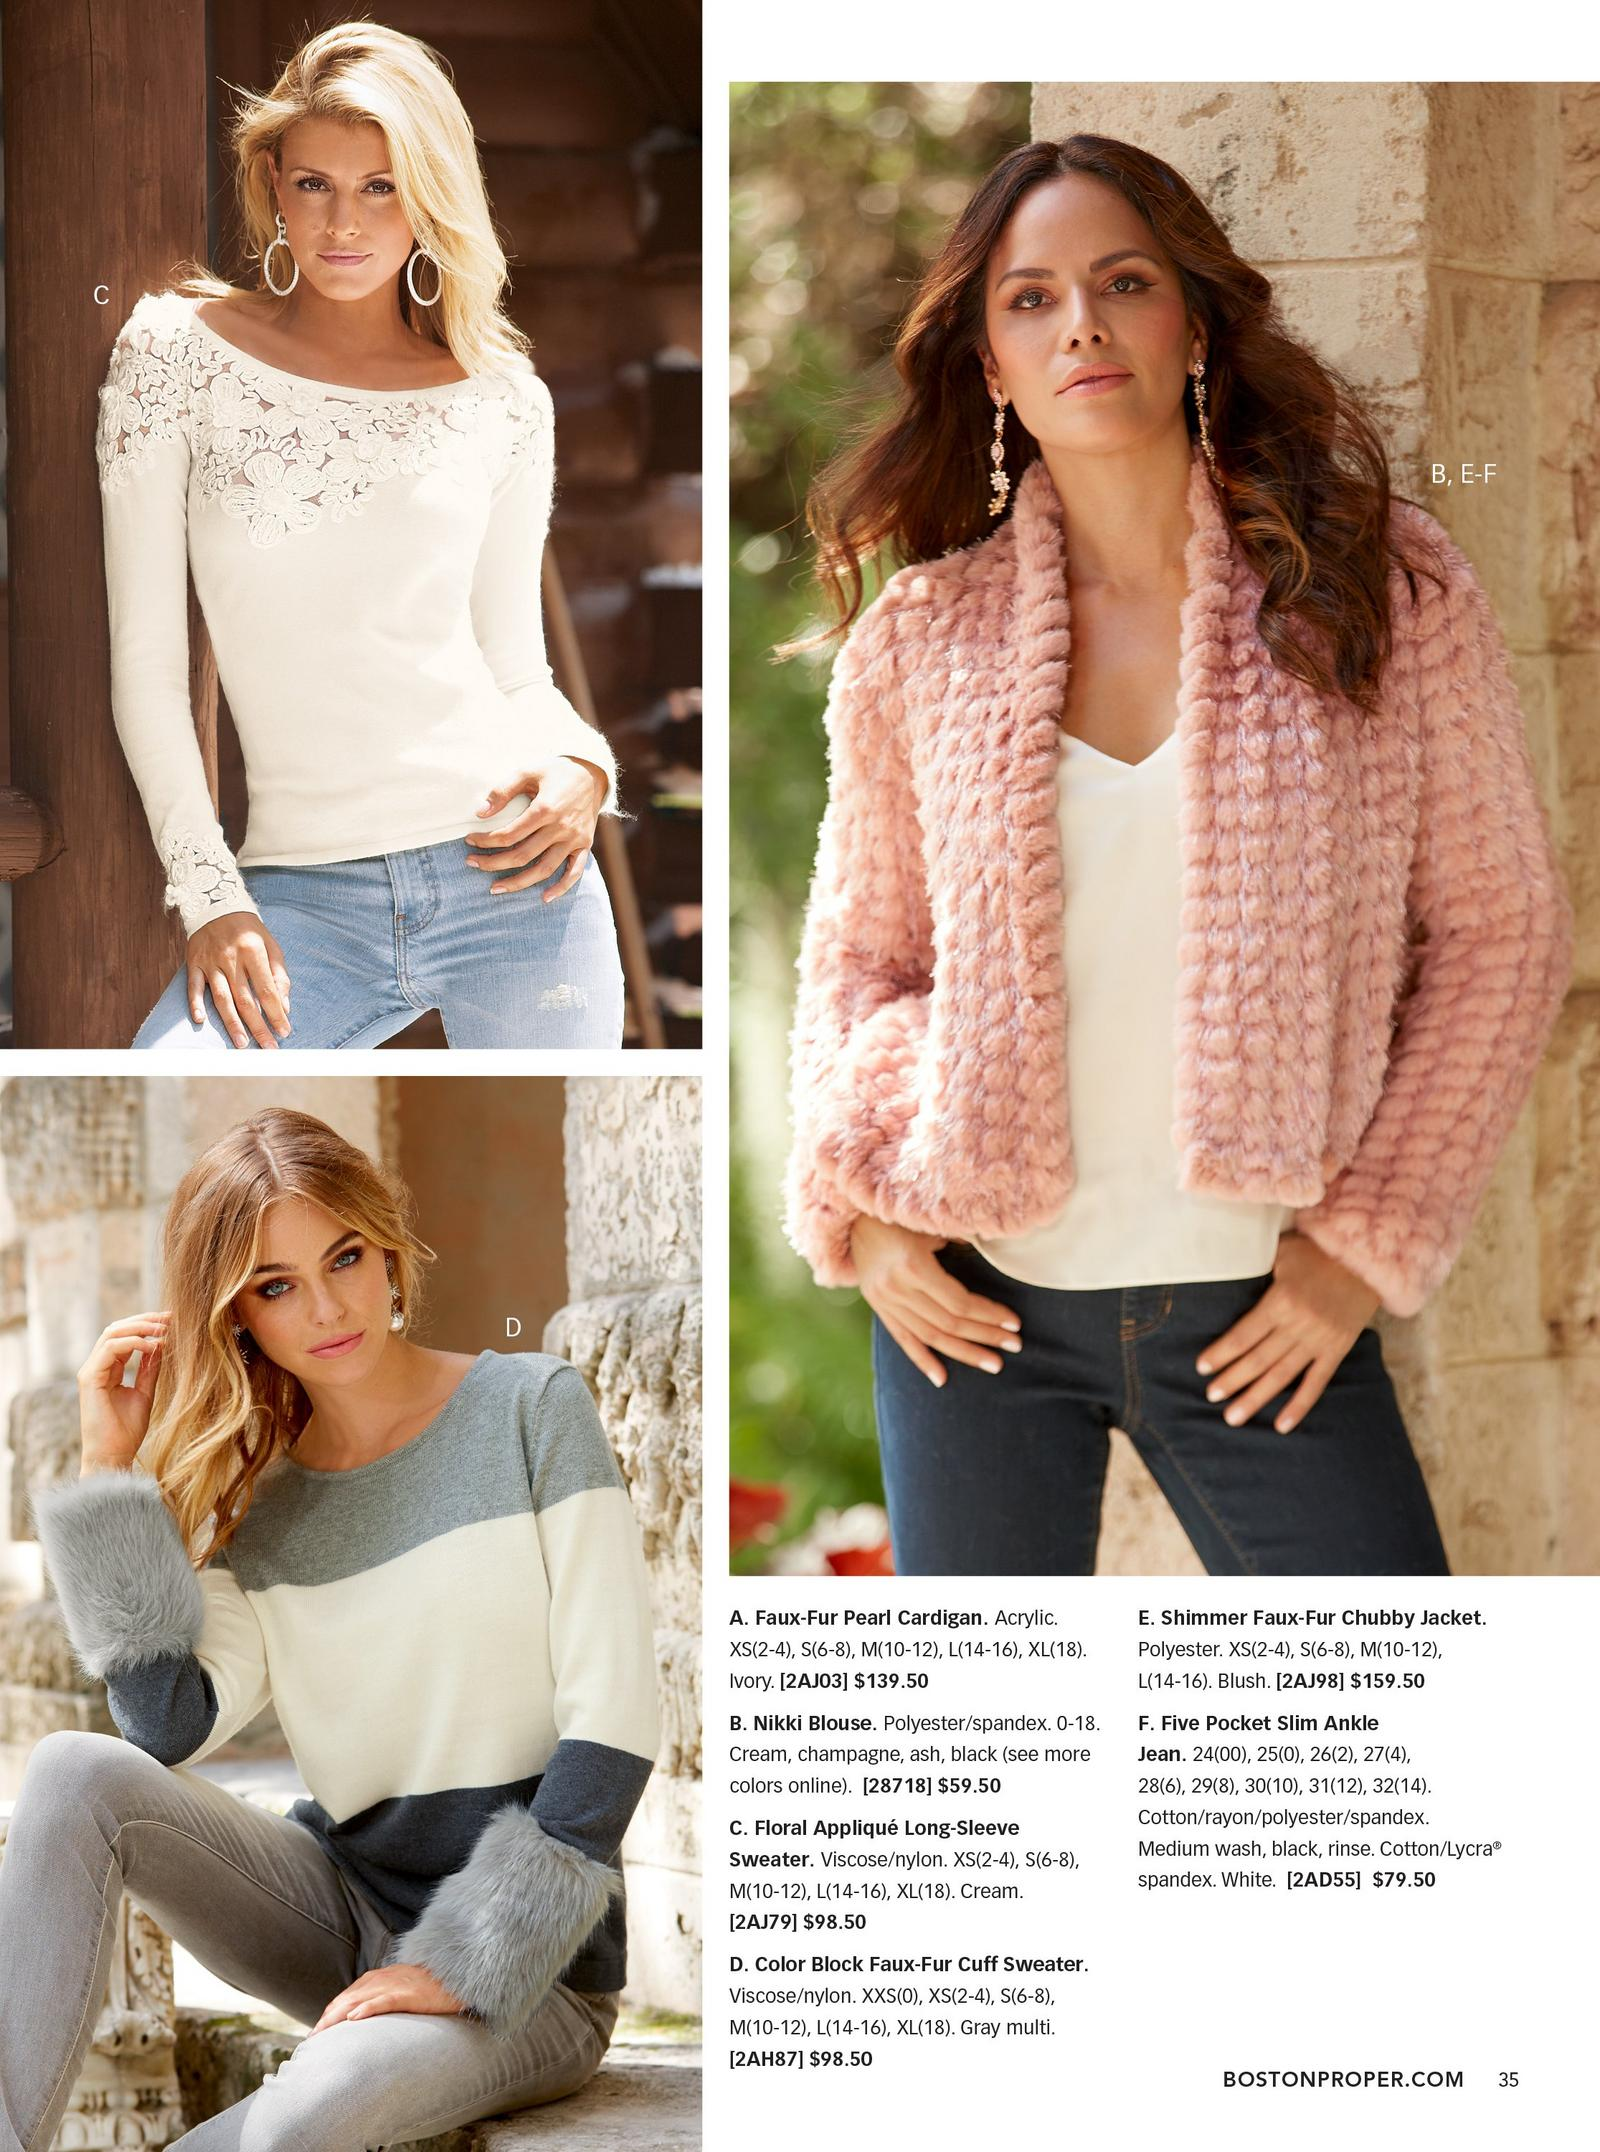 top left: model wearing cream floral sweater. bottom left: model wearing color block faux-fur cuff sweater. right: model wearing pink shimmer faux-fur chubby jacket over white tank top.